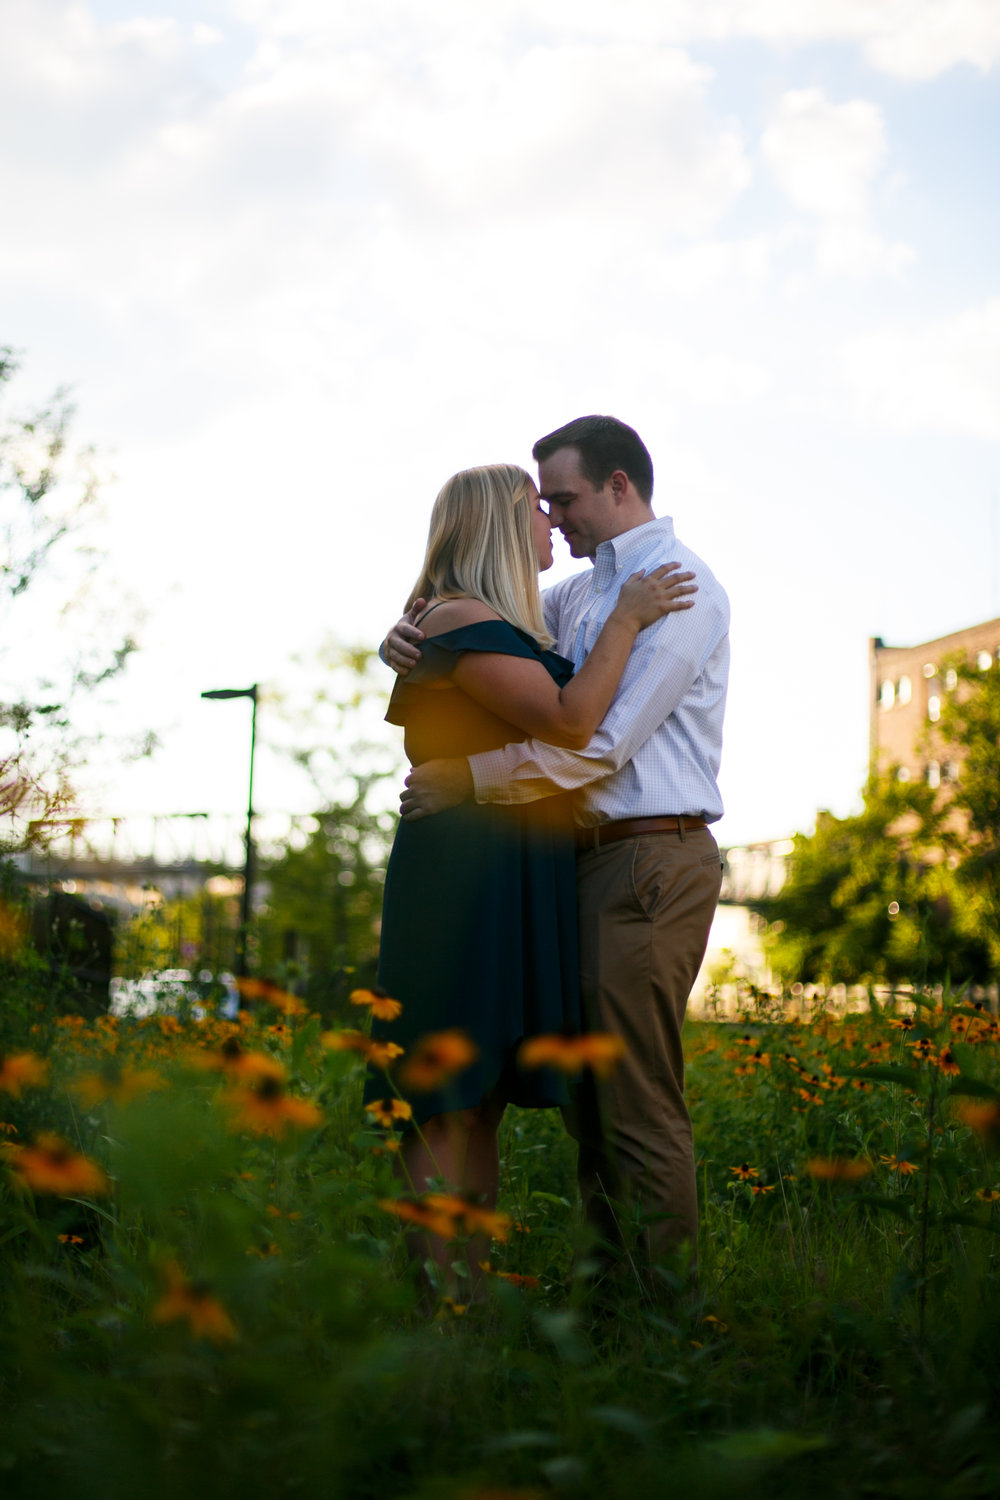 Manayunk Philadelphia Main Street Engagement Session 11